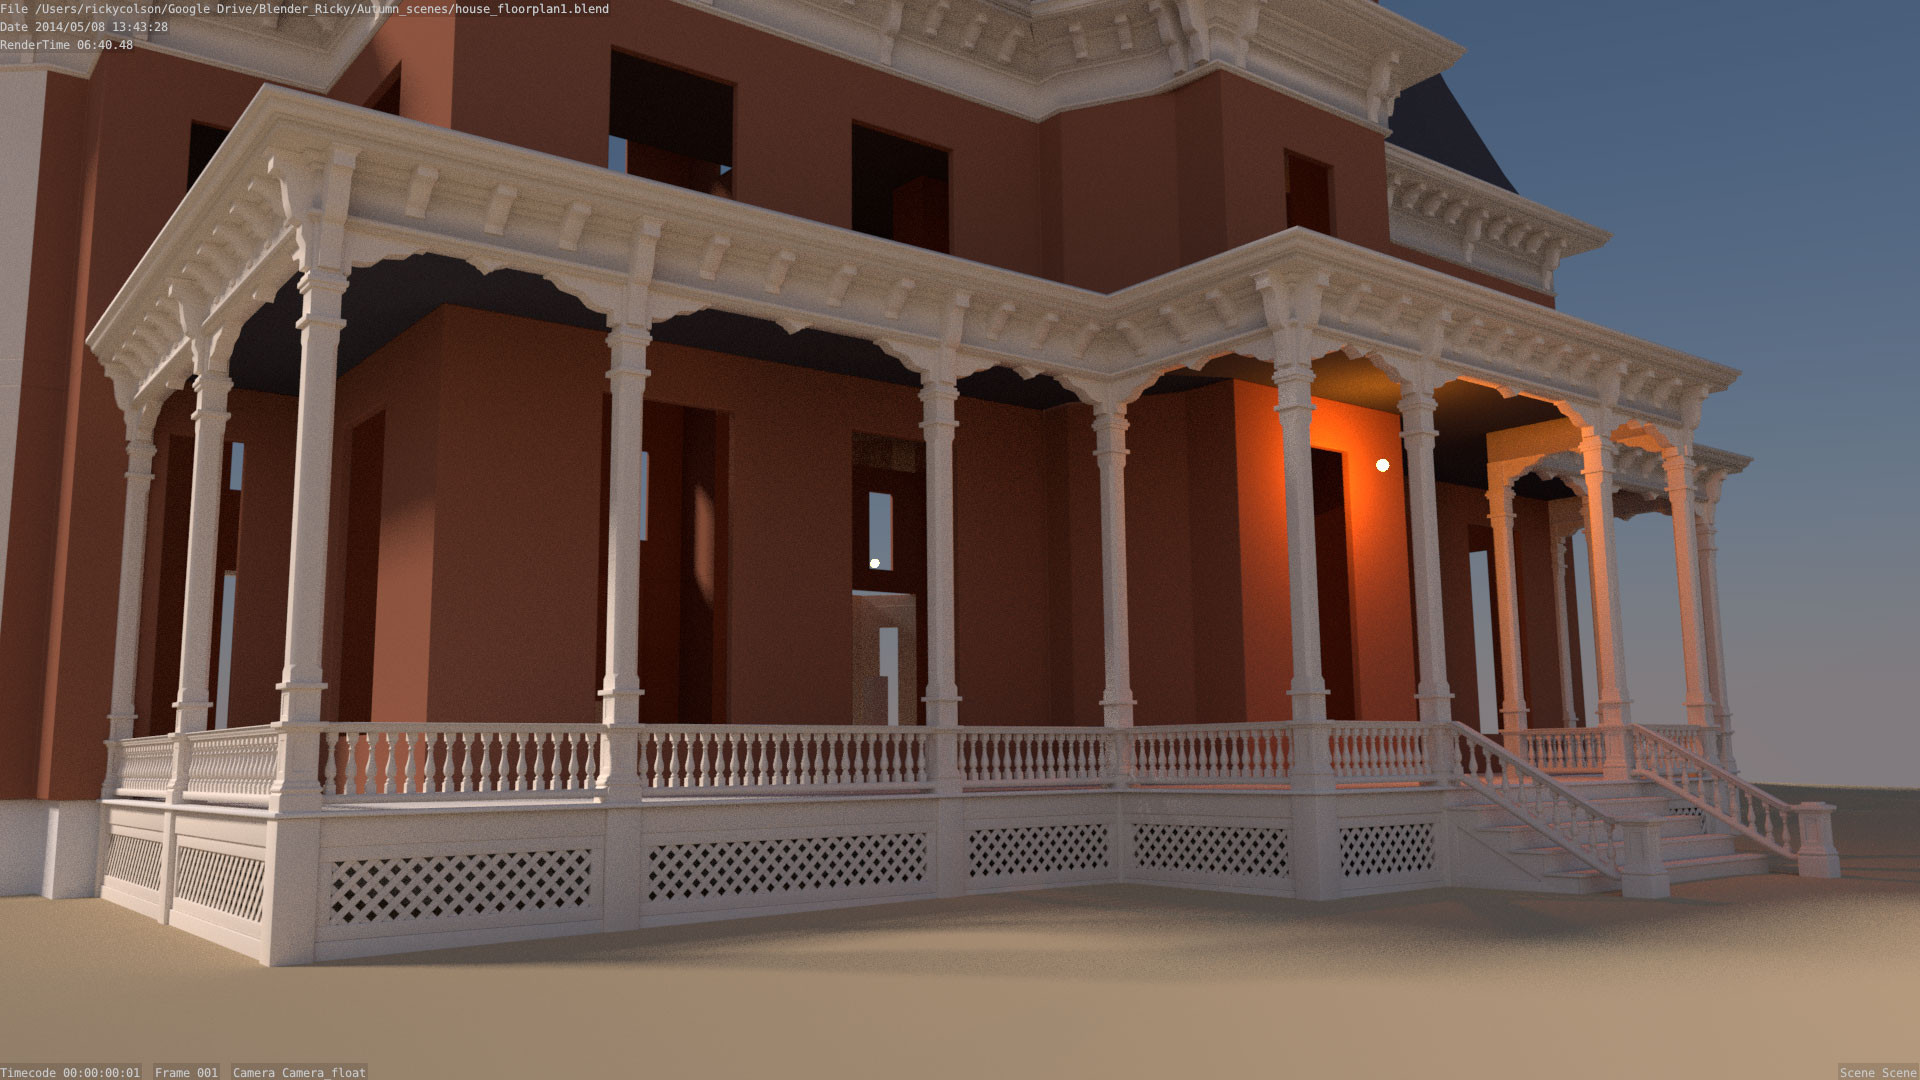 3d model of porch and house